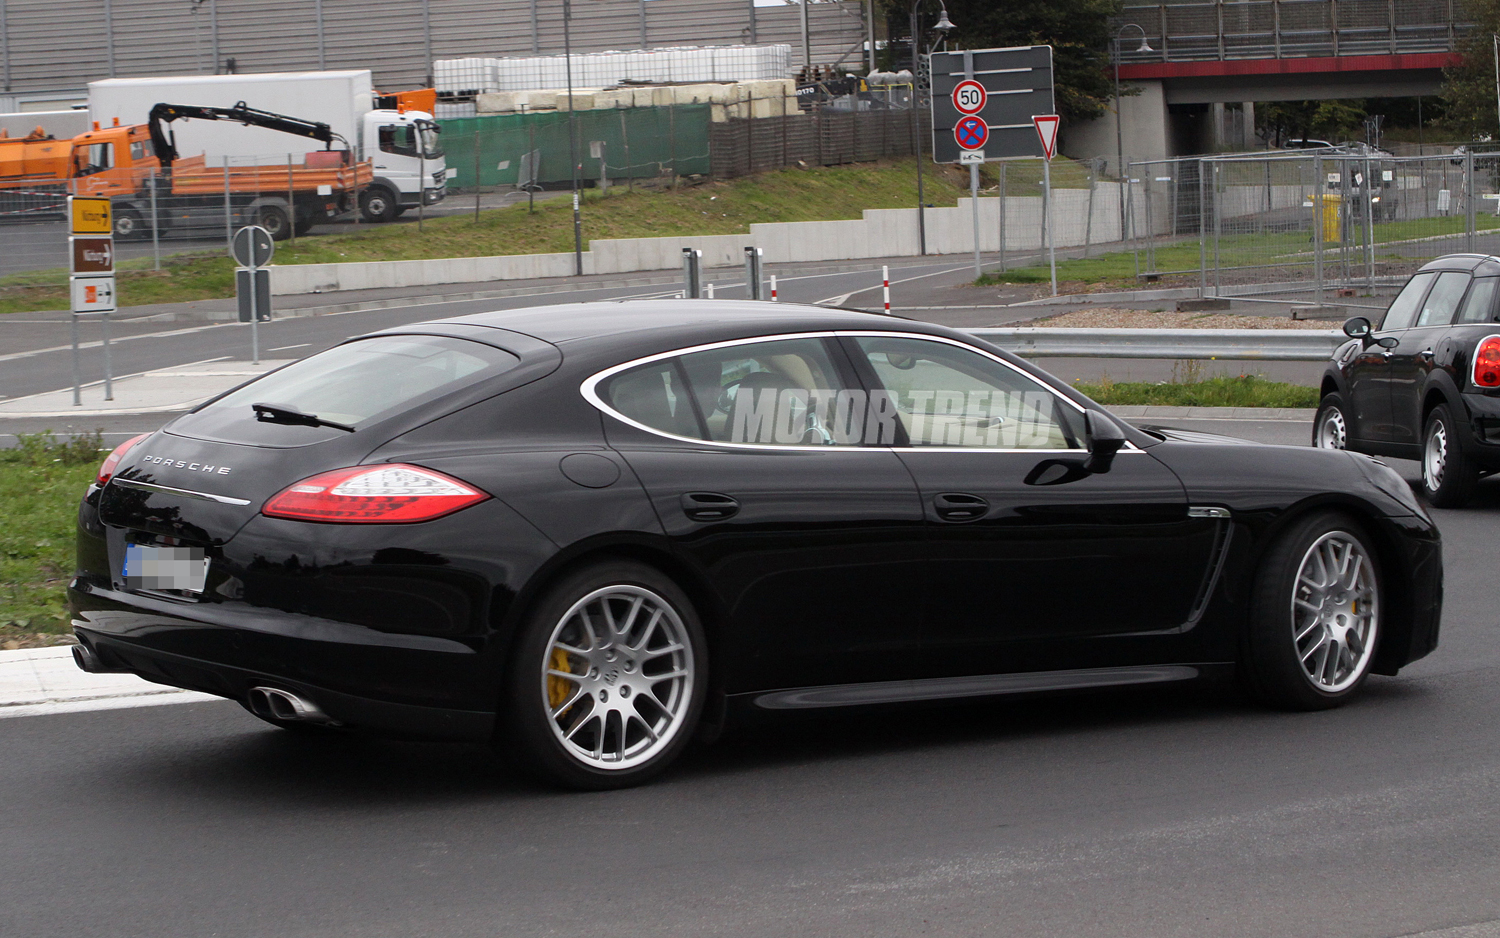 2012 Porsche Panamera facelift Rear angle side view